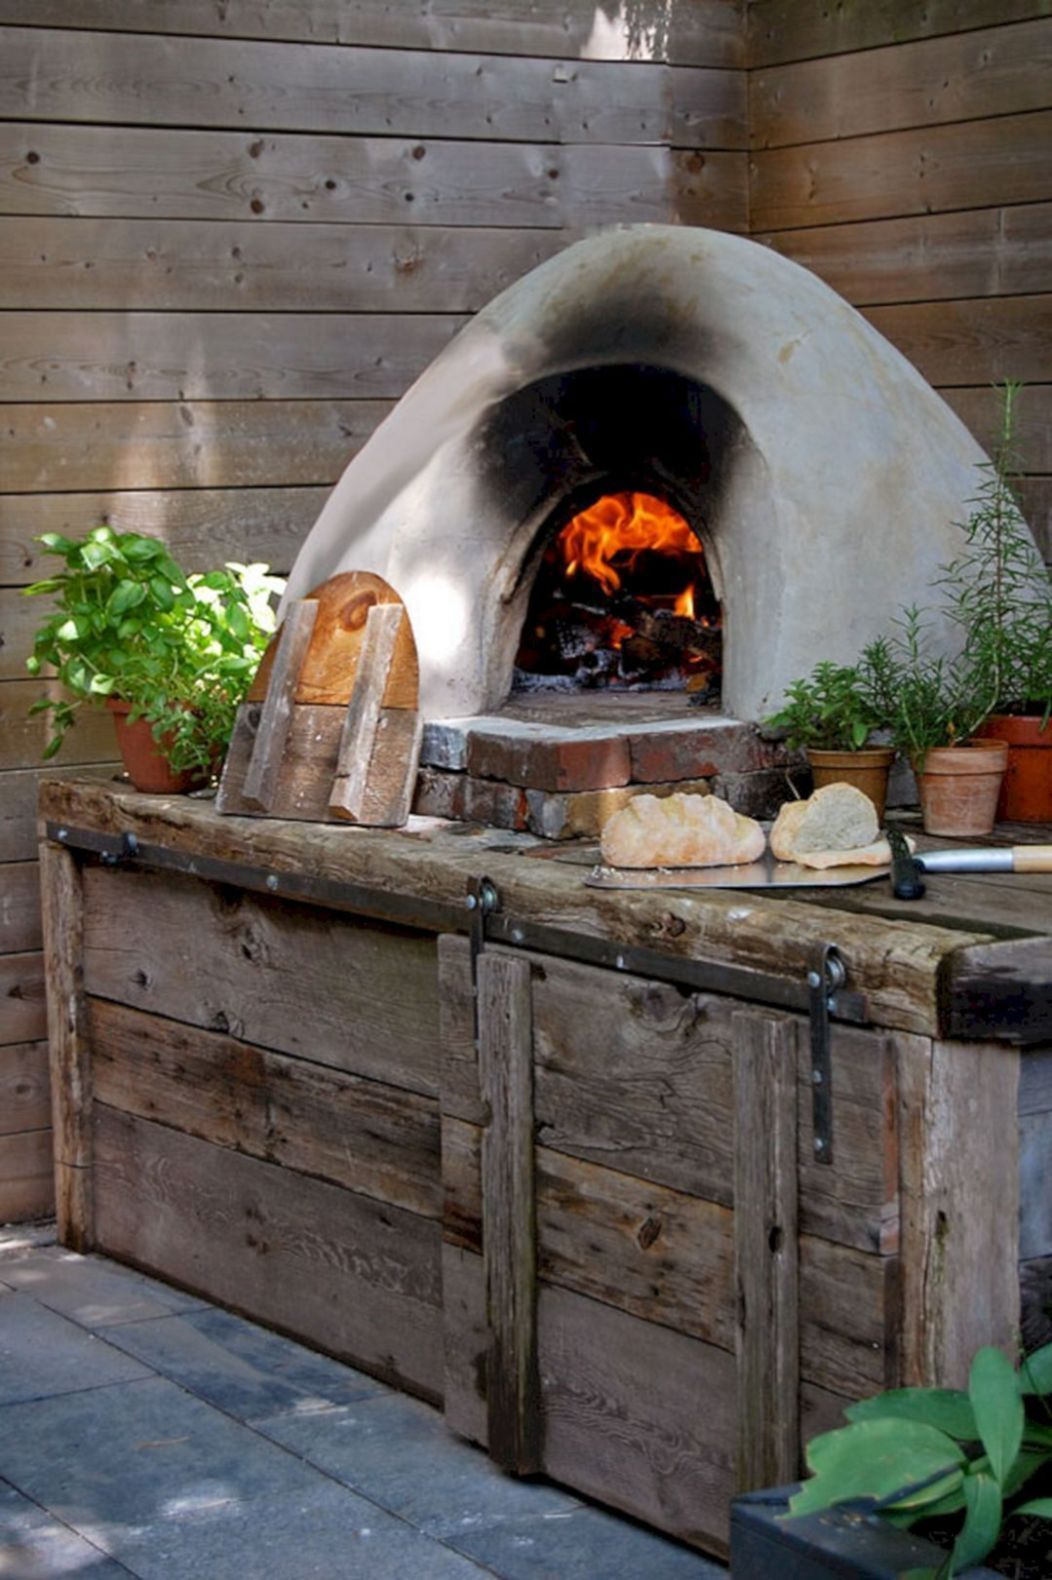 Enjoy Cooking With Amazing Outdoor Kitchen Ideas 32 | Diy ...